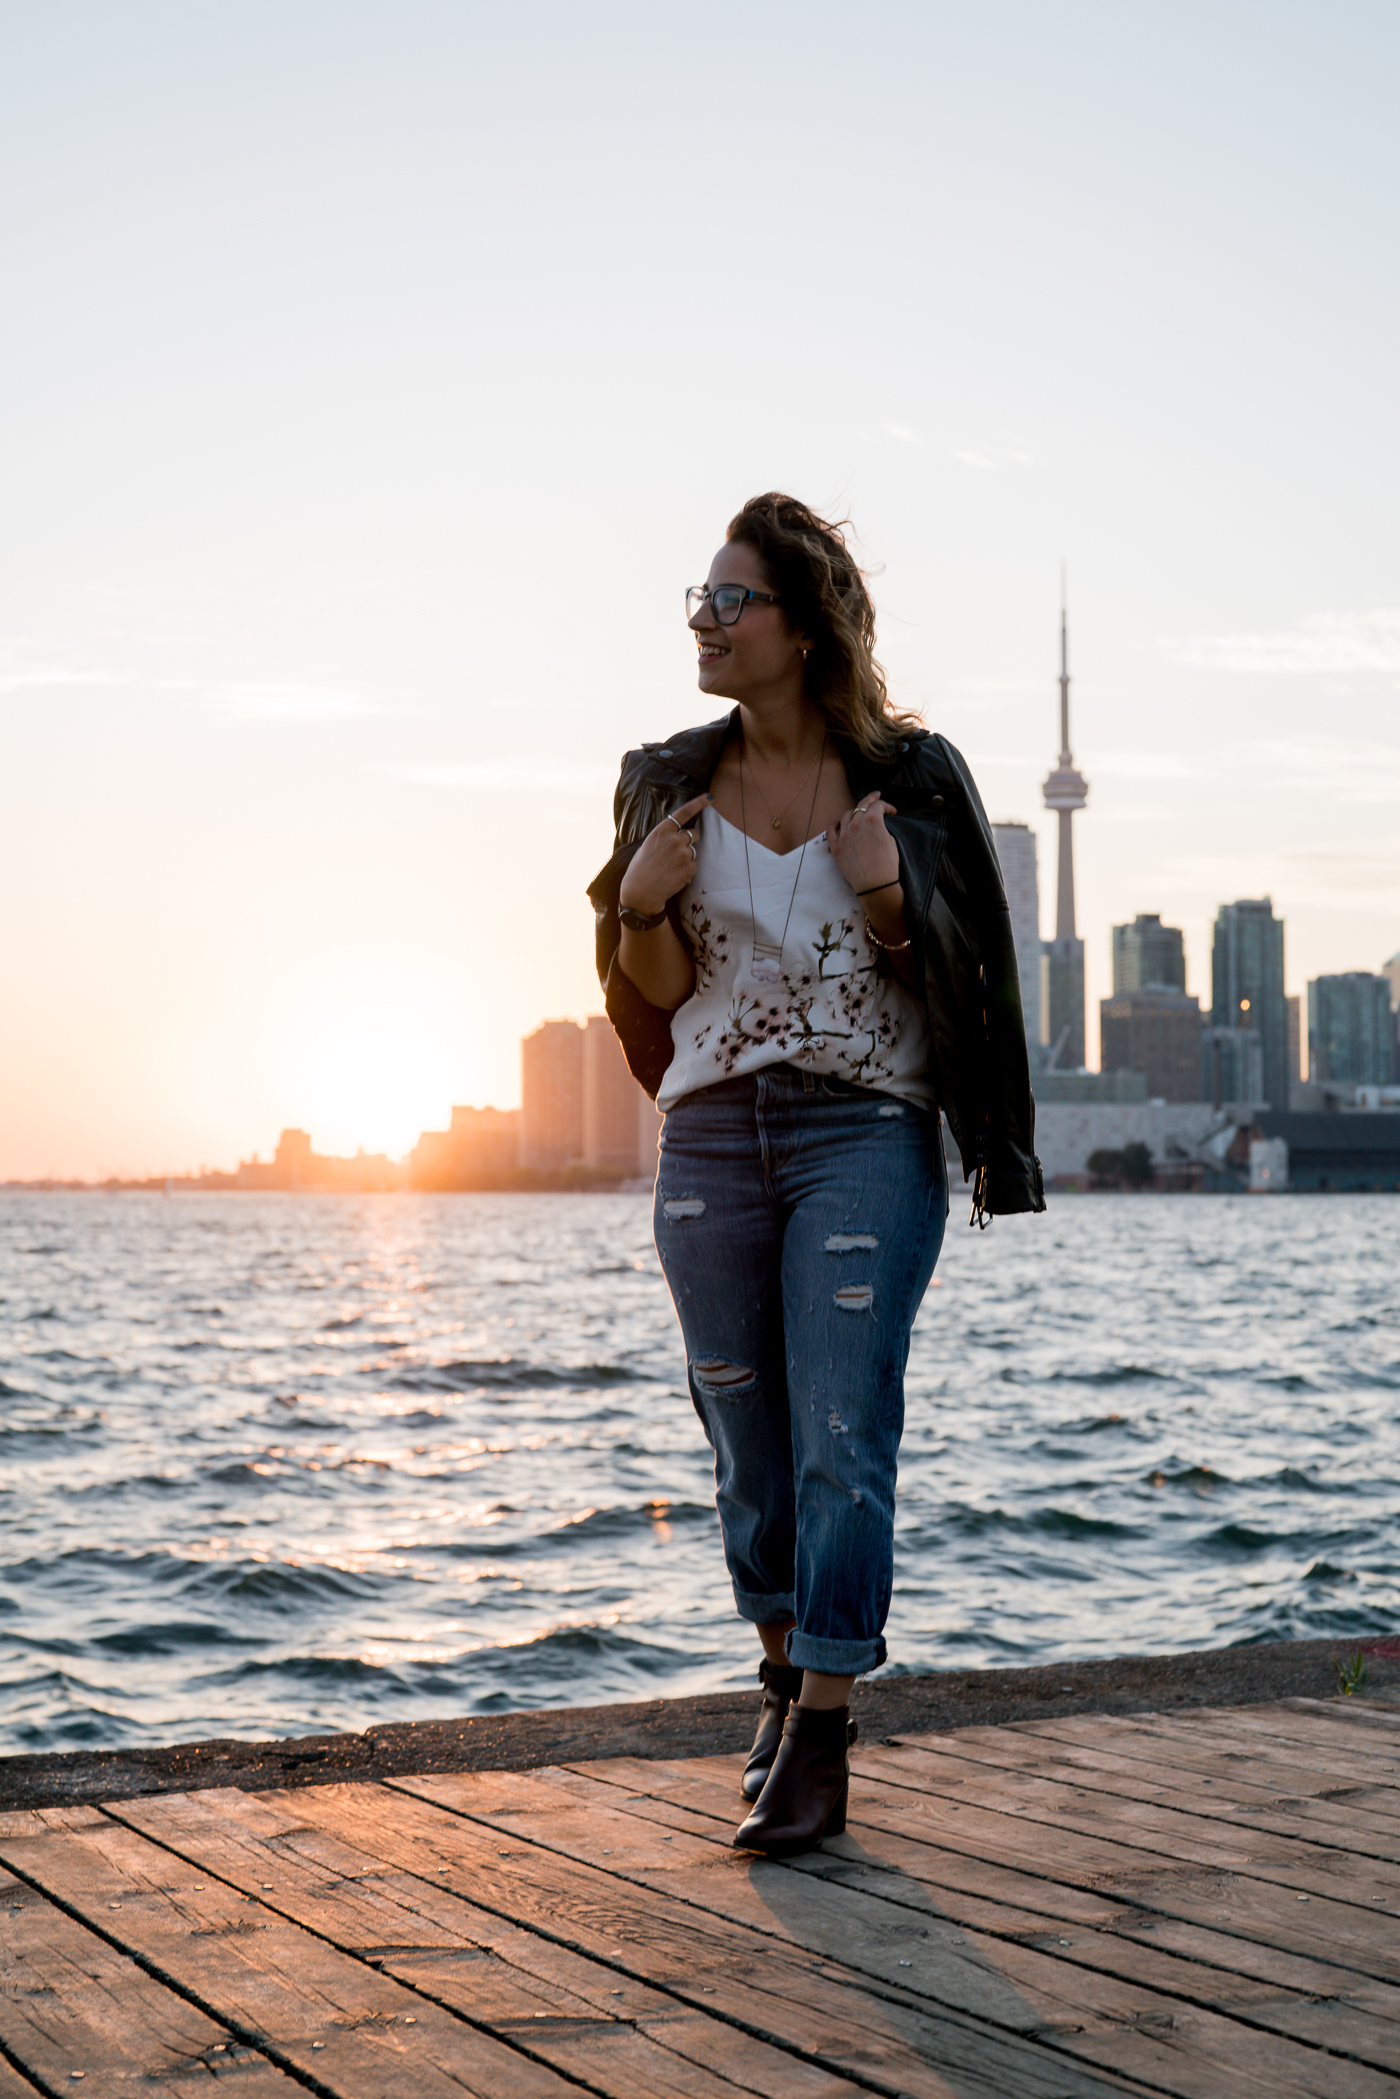 Canadian fashion blogger is wearing a black leather jacket with levi's wedgie jeans and a floral top